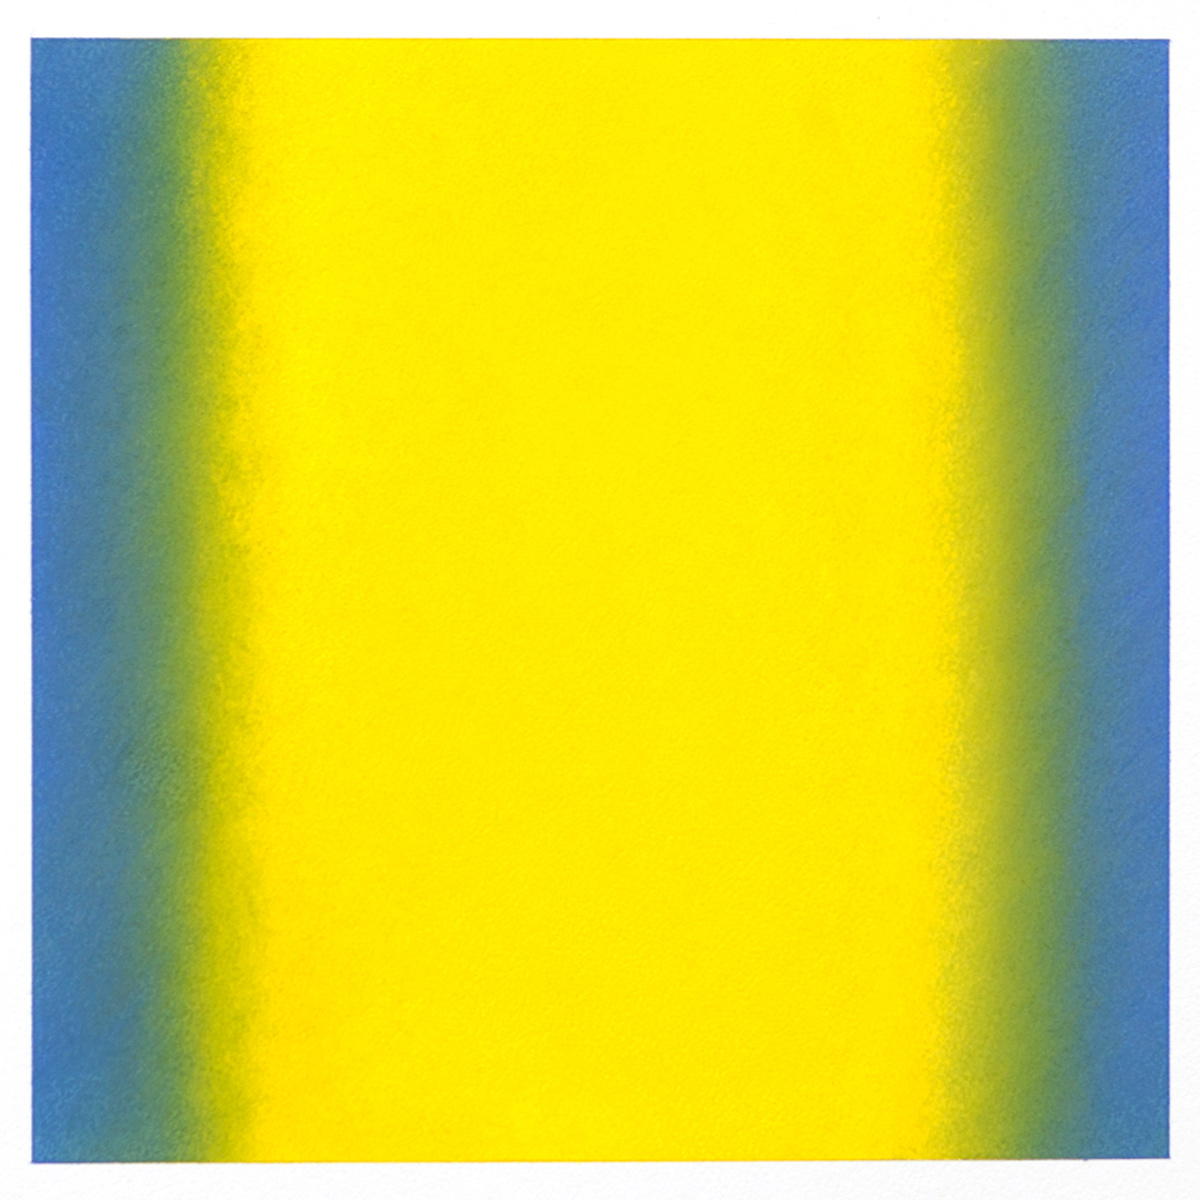 Counterpoint #9, 2012, pastel on paper, image 14 x 14 in. (36 x 36 cm.), sheet 30 x 22 in. (76 x 56 cm.)